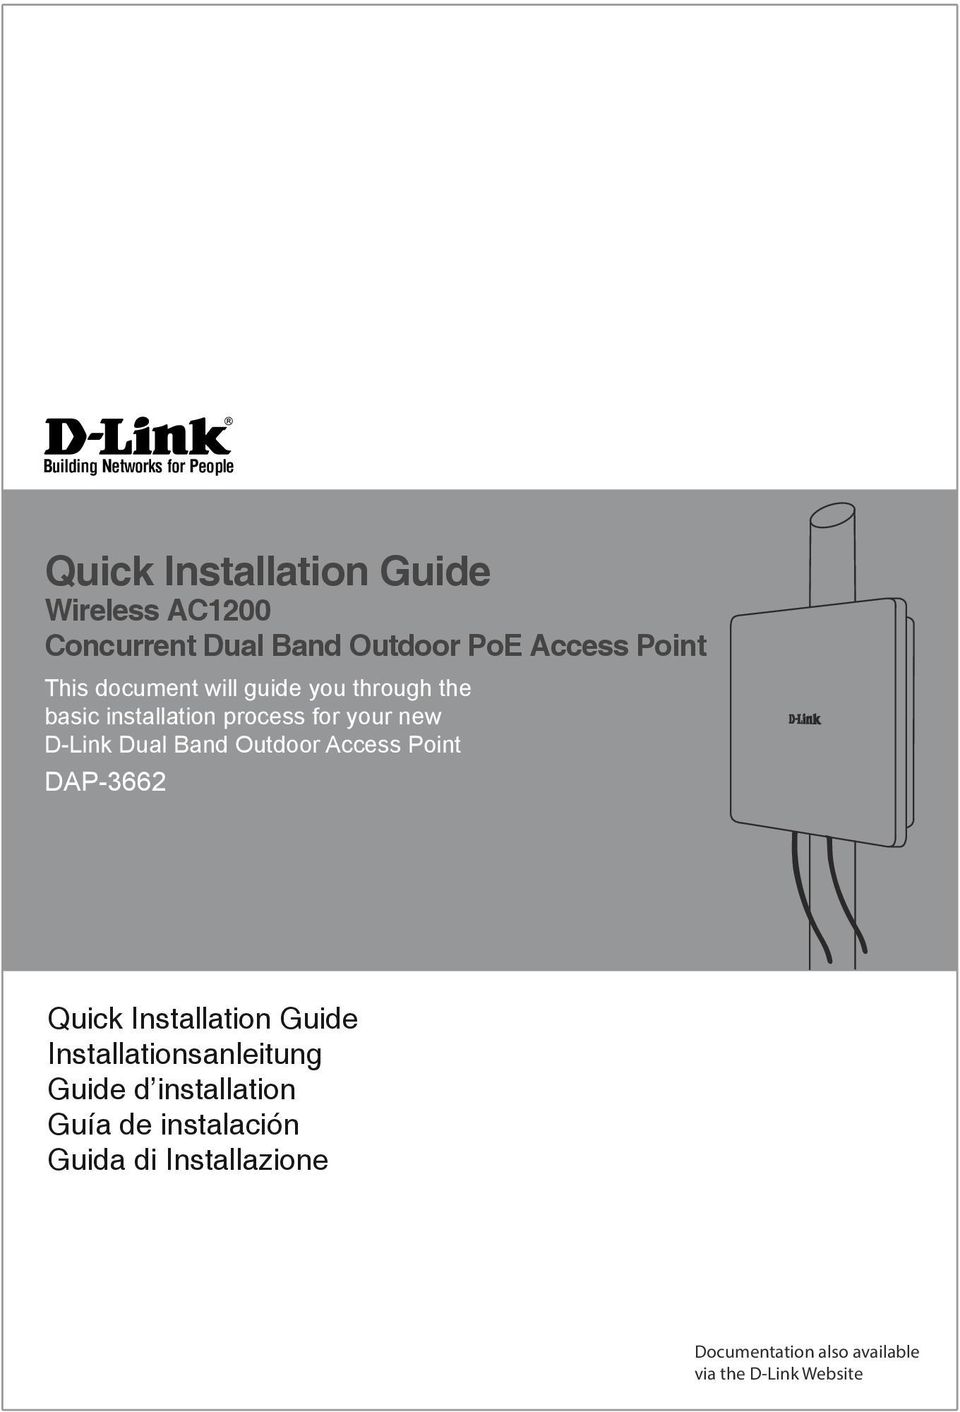 D-Link Dual Band Outdoor Access Point DAP-3662 Quick Installation Guide Installationsanleitung Guide